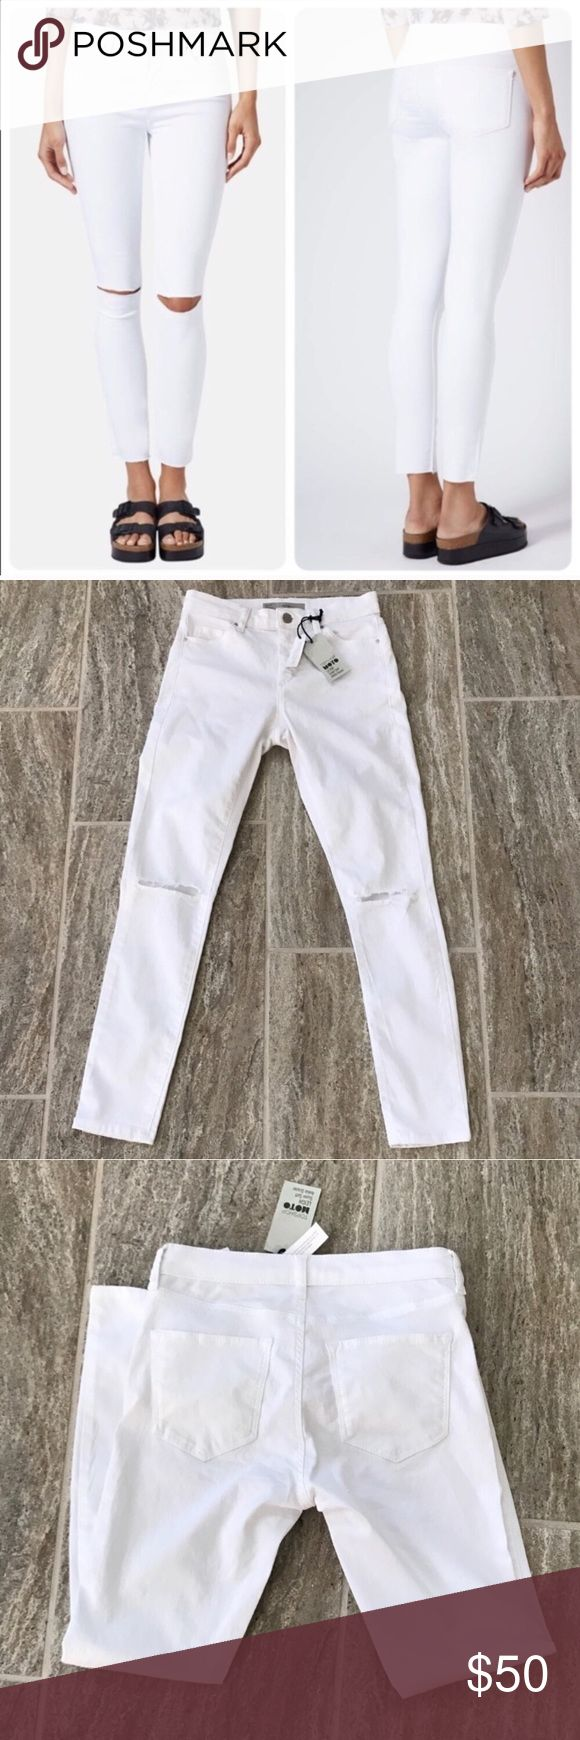 NWT Topshop Moto Leigh Soft Ankle Grazer Jeans Topshop Ripped Knee Moto Leigh Jeans Style#: 02L02JWHT White Size: W25 to fit L32 High-waisted skinny jeans of stretch-denim find casual, carefree style with lightly whiskered hips, sliced knees and ankle-length hems.  Zip fly with button closure  Five-pocket style  67% cotton, 29% polyester, 4% elastane  Machine wash, line dry Topshop Jeans Skinny